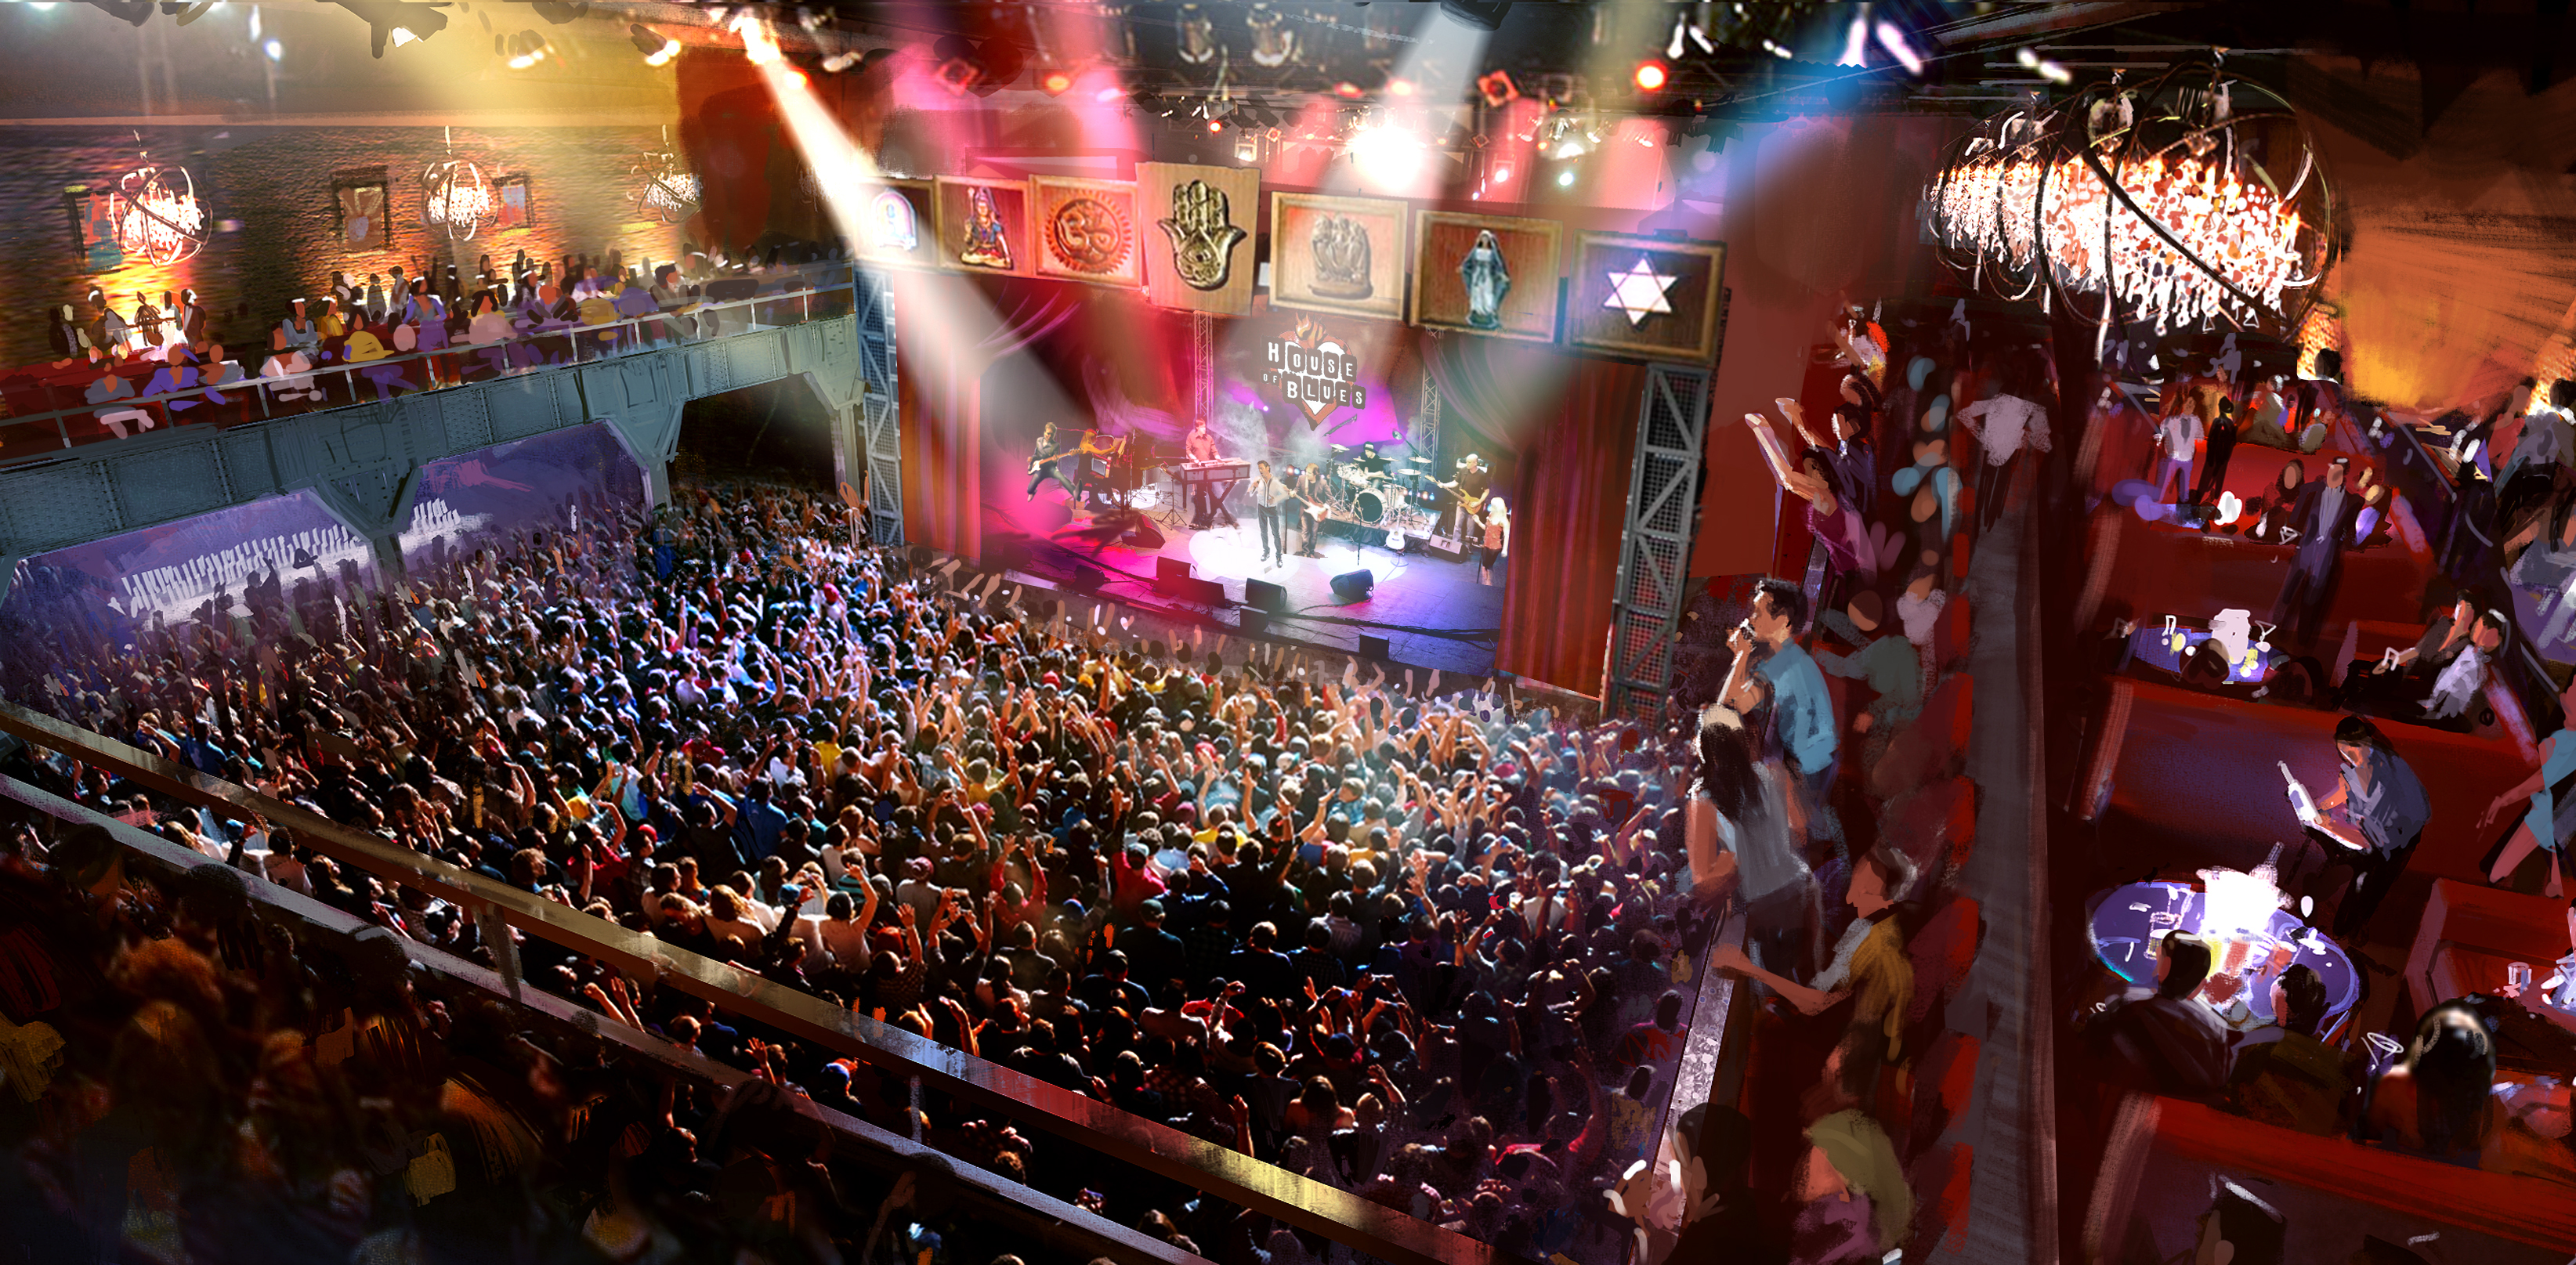 Image courtesy of House of Blues